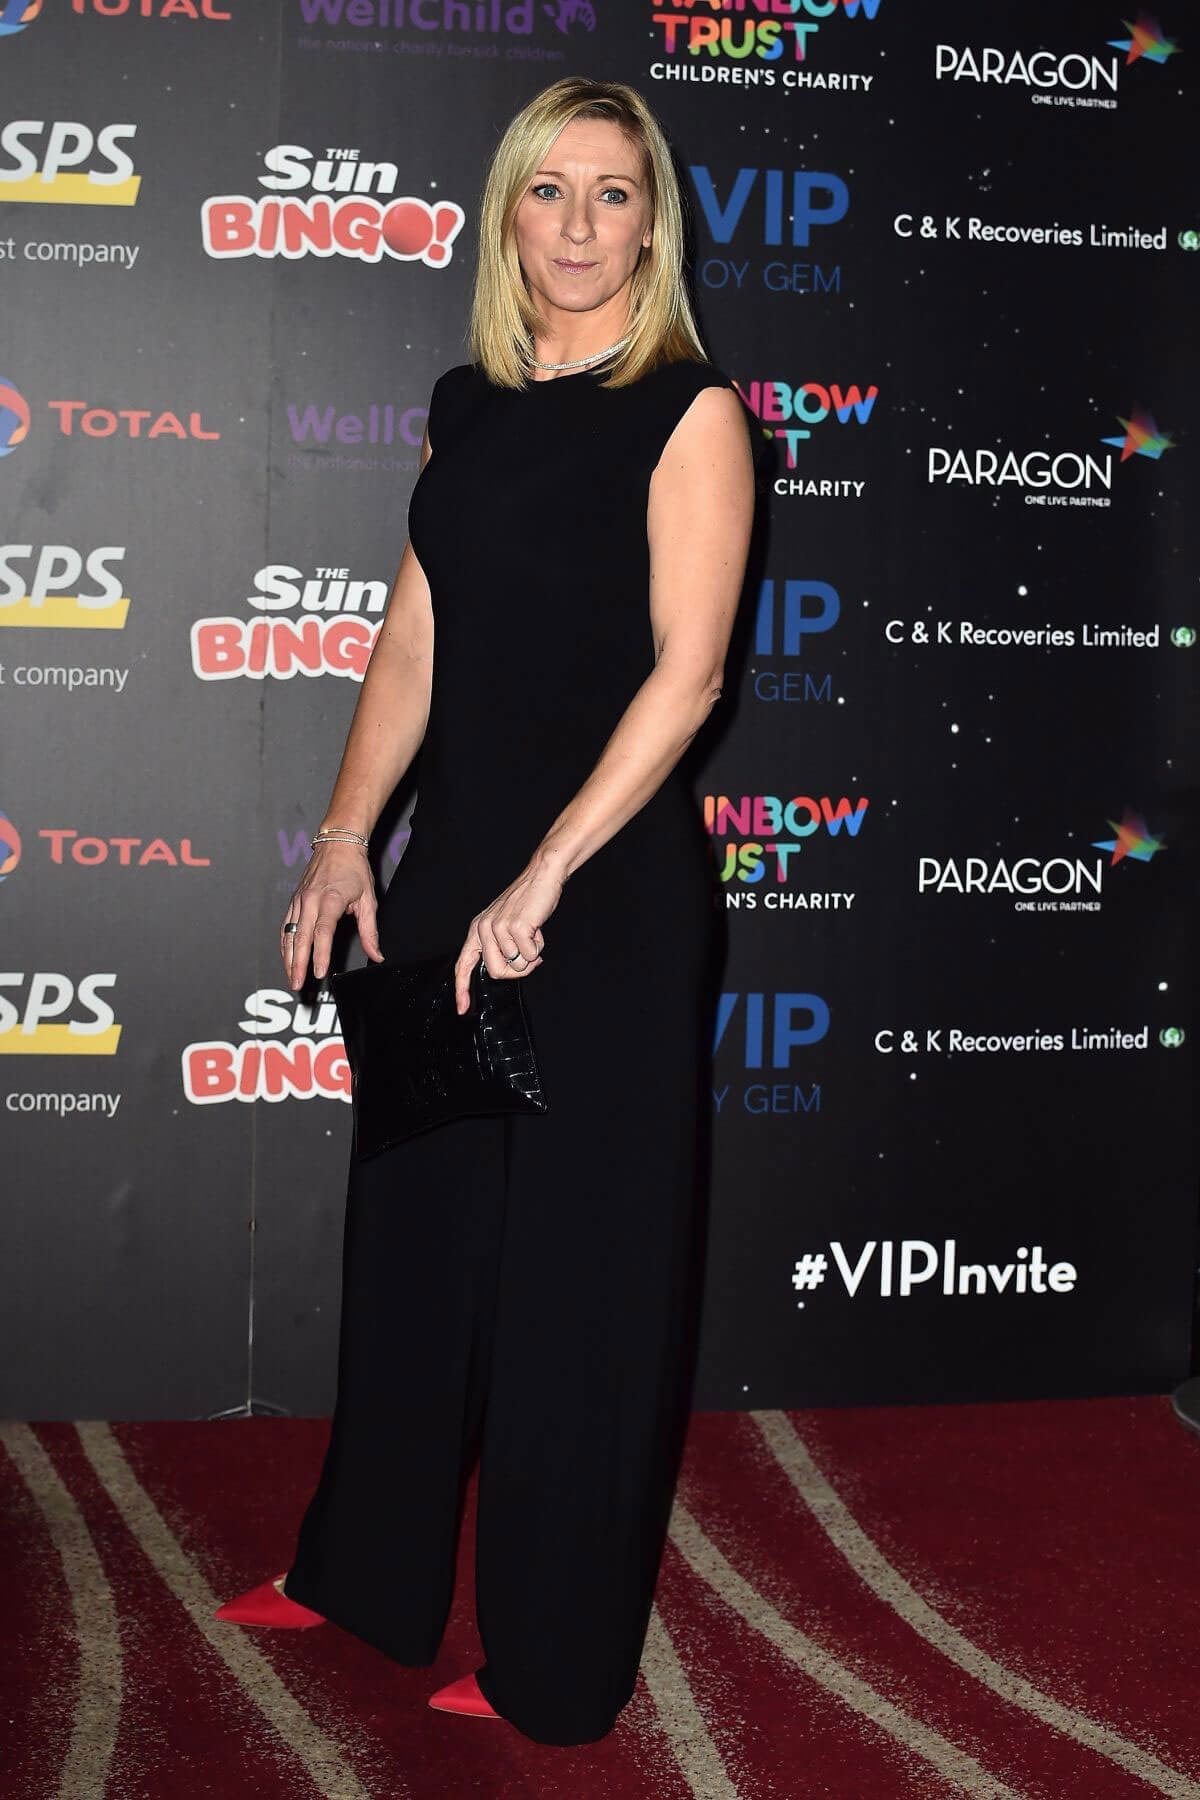 Vicky Gomersall Stills at An Evening with the Stars in London